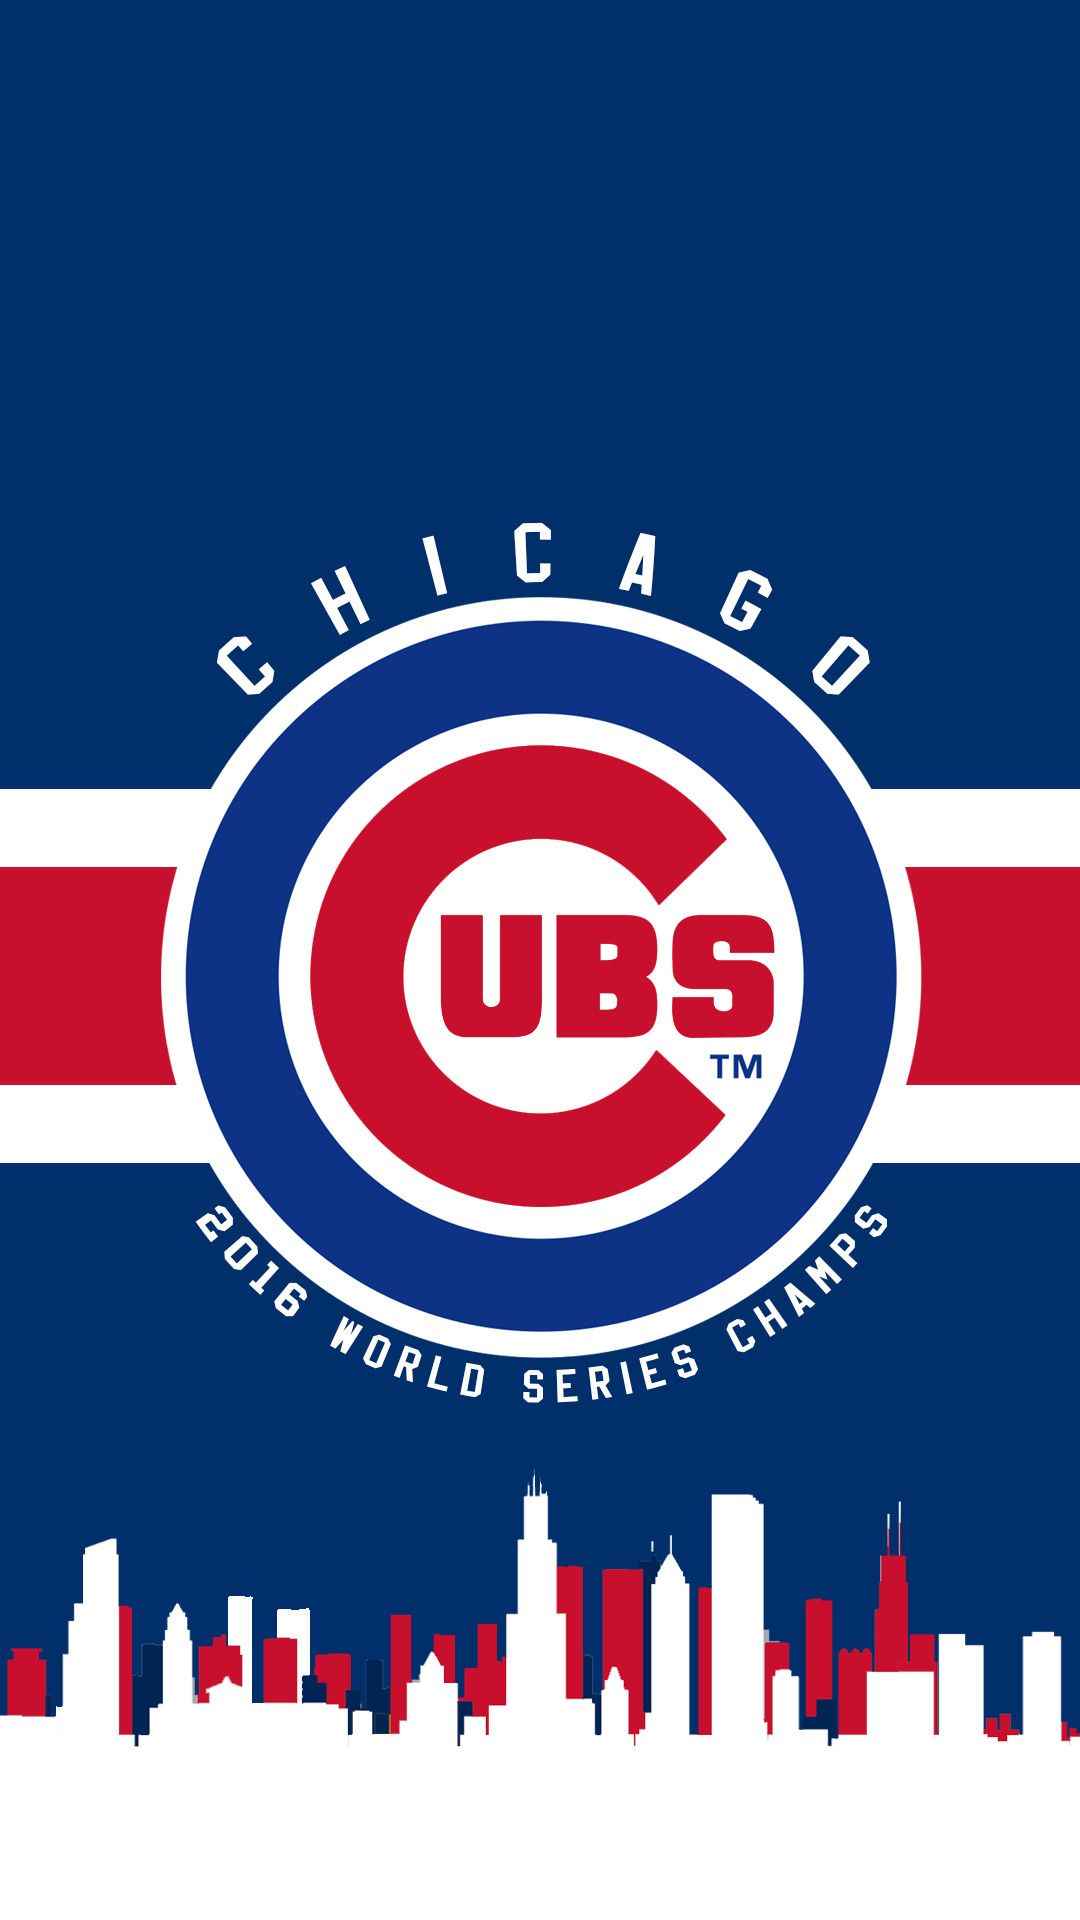 Chicago Cubs Wallpaper For Phones Chicago Cubs Wallpaper Cubs Wallpaper Chicago Cubs